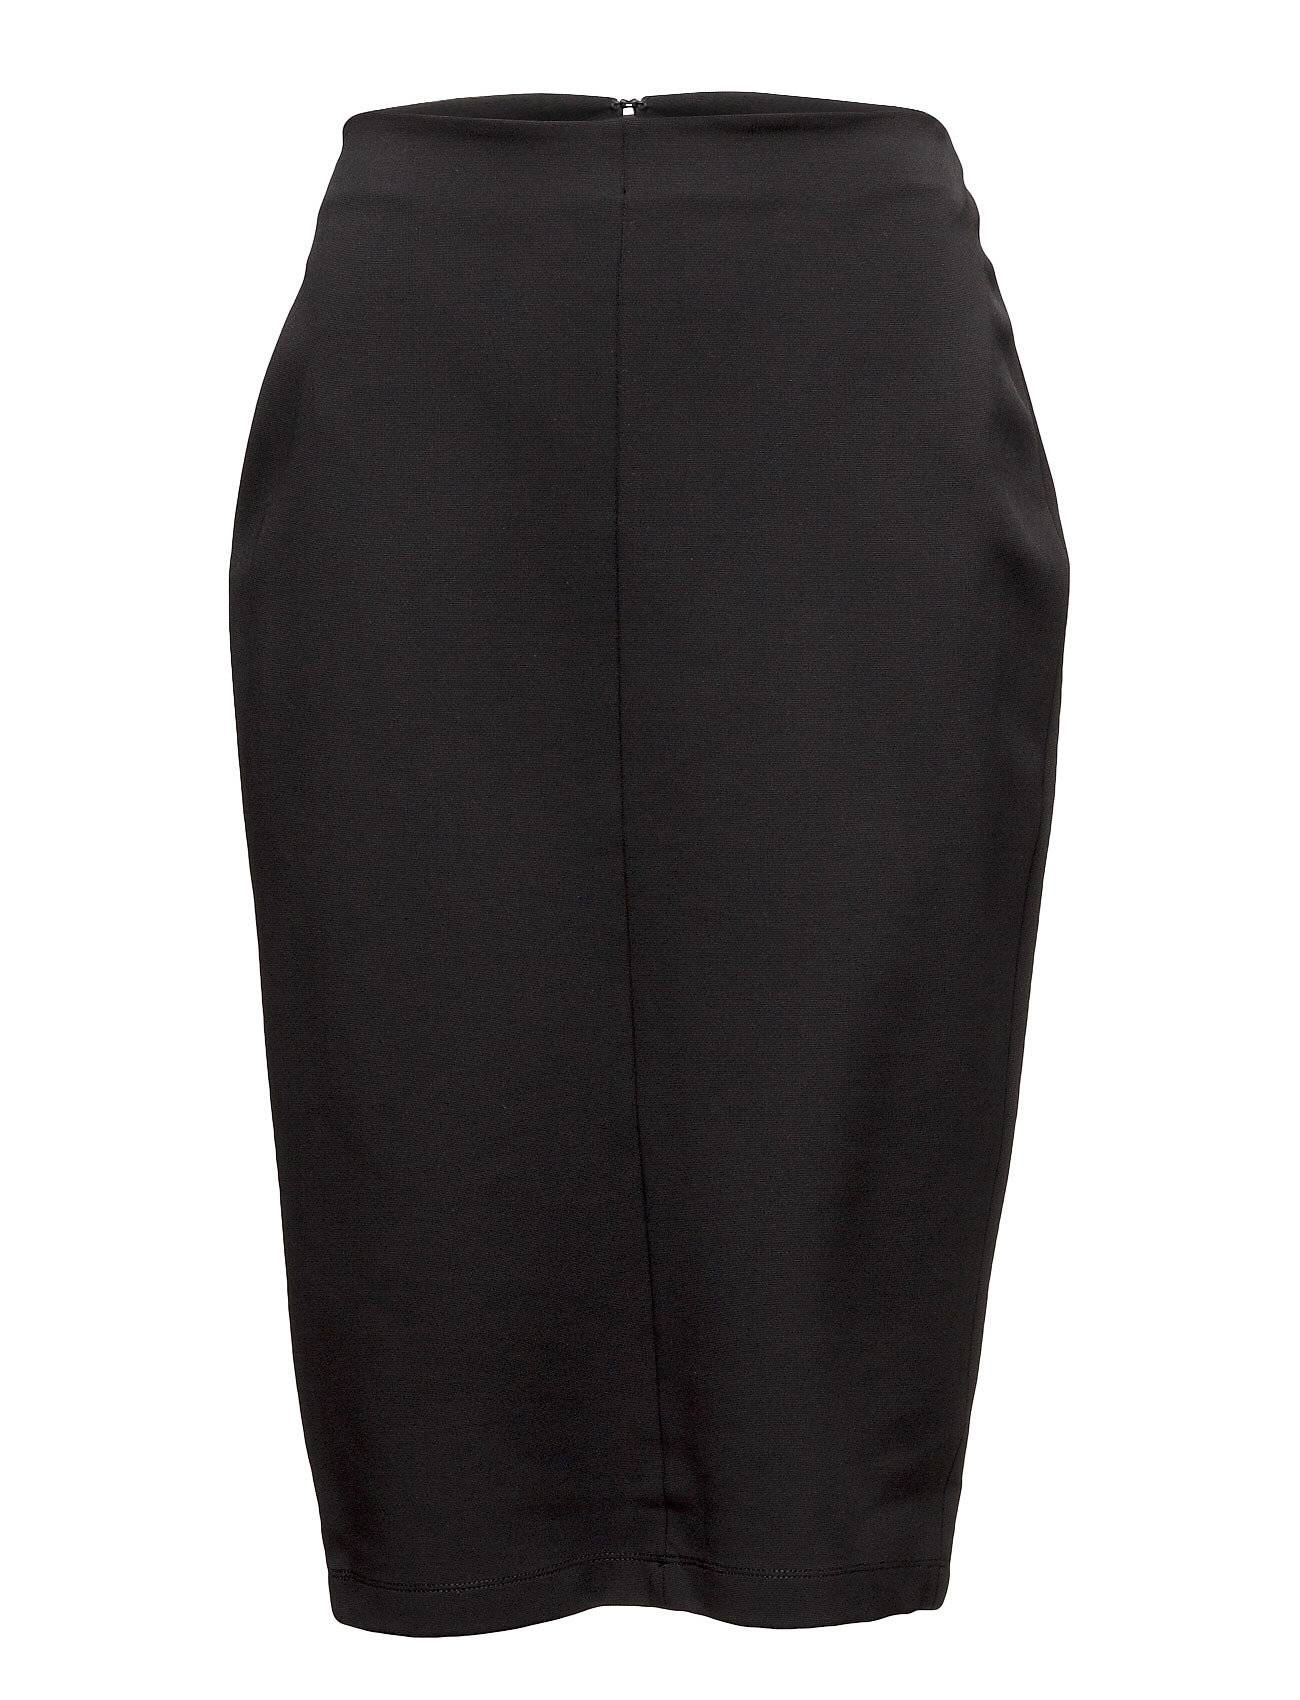 T by Alexander Wang Stretch Faille Over The Knee Pencil Skirt